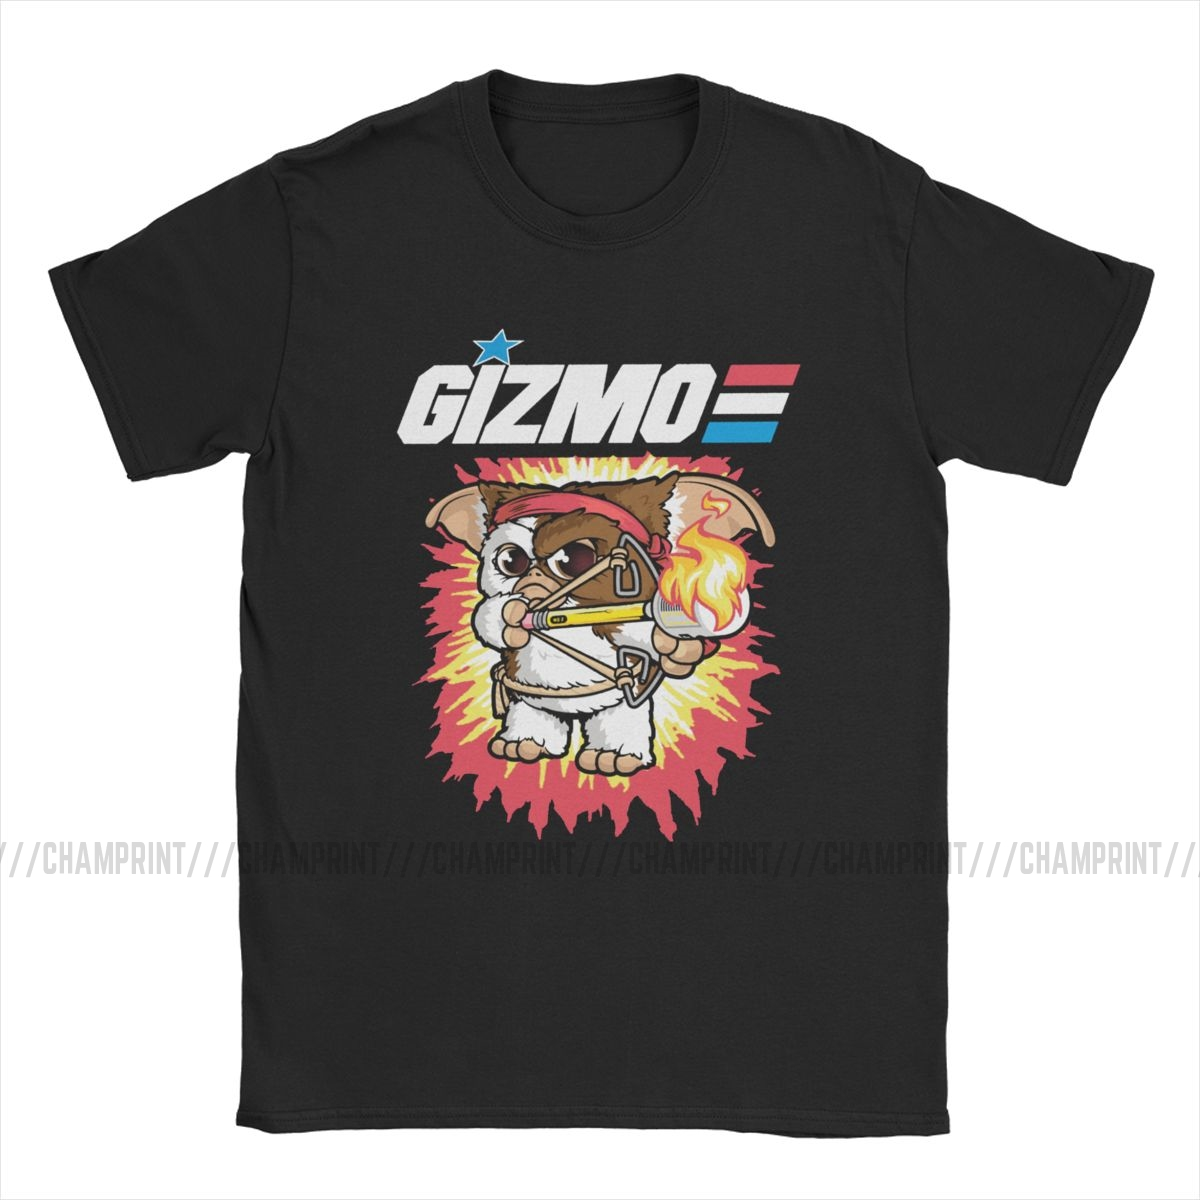 Gremlins T-Shirt for Men Gizmo 80s Movie Mogwai Monster Retro Sci Fi Casual Cotton Tees Short Sleeve T Shirt 4XL 5XL 6XL Tops